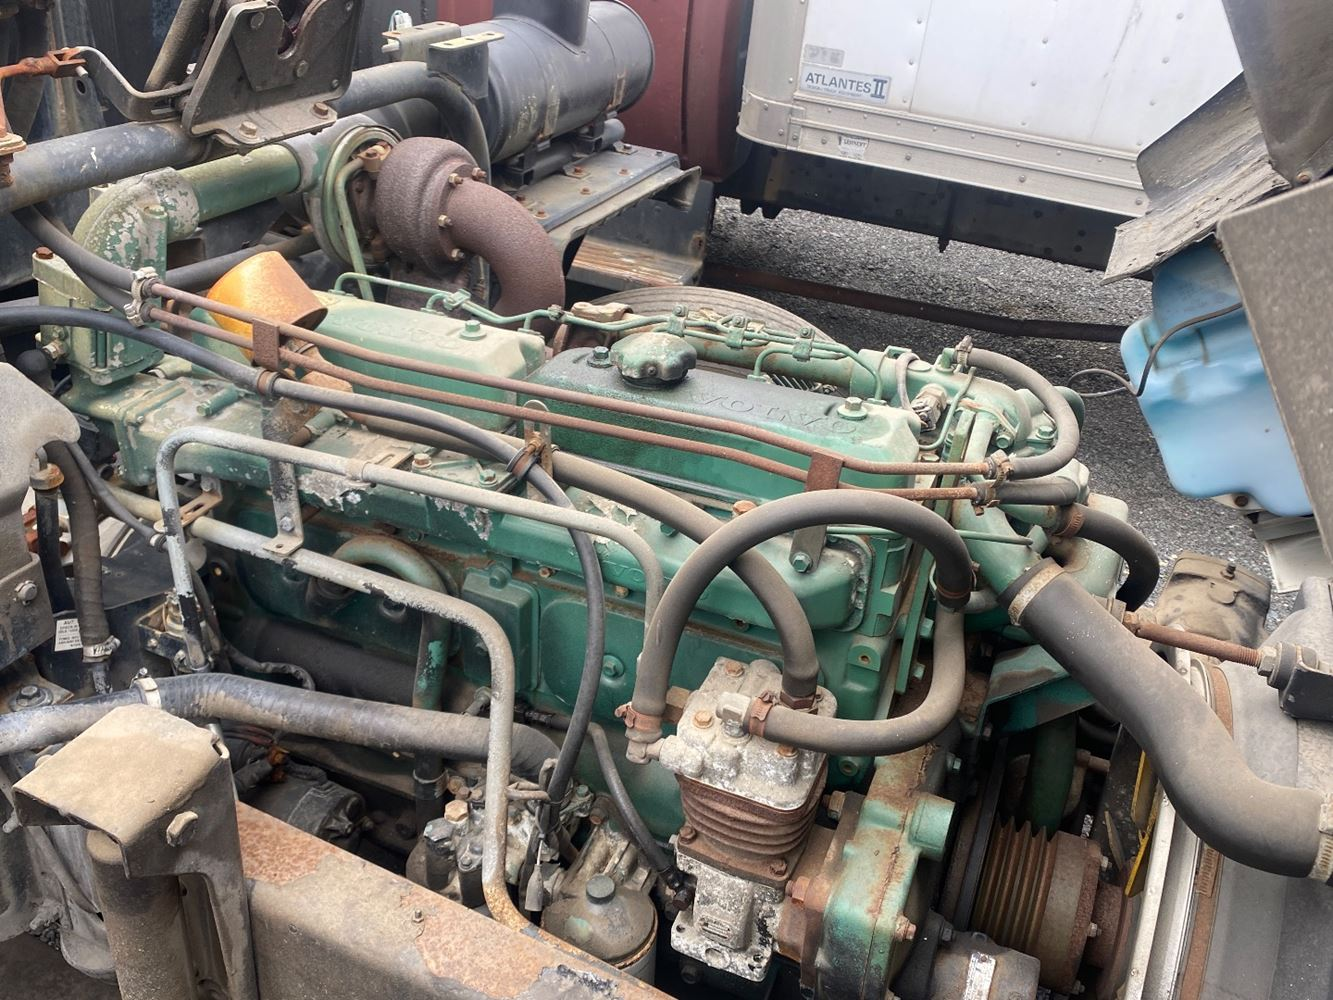 1987 VOLVO TD61GE ENGINE ASSEMBLY TRUCK PARTS #721488